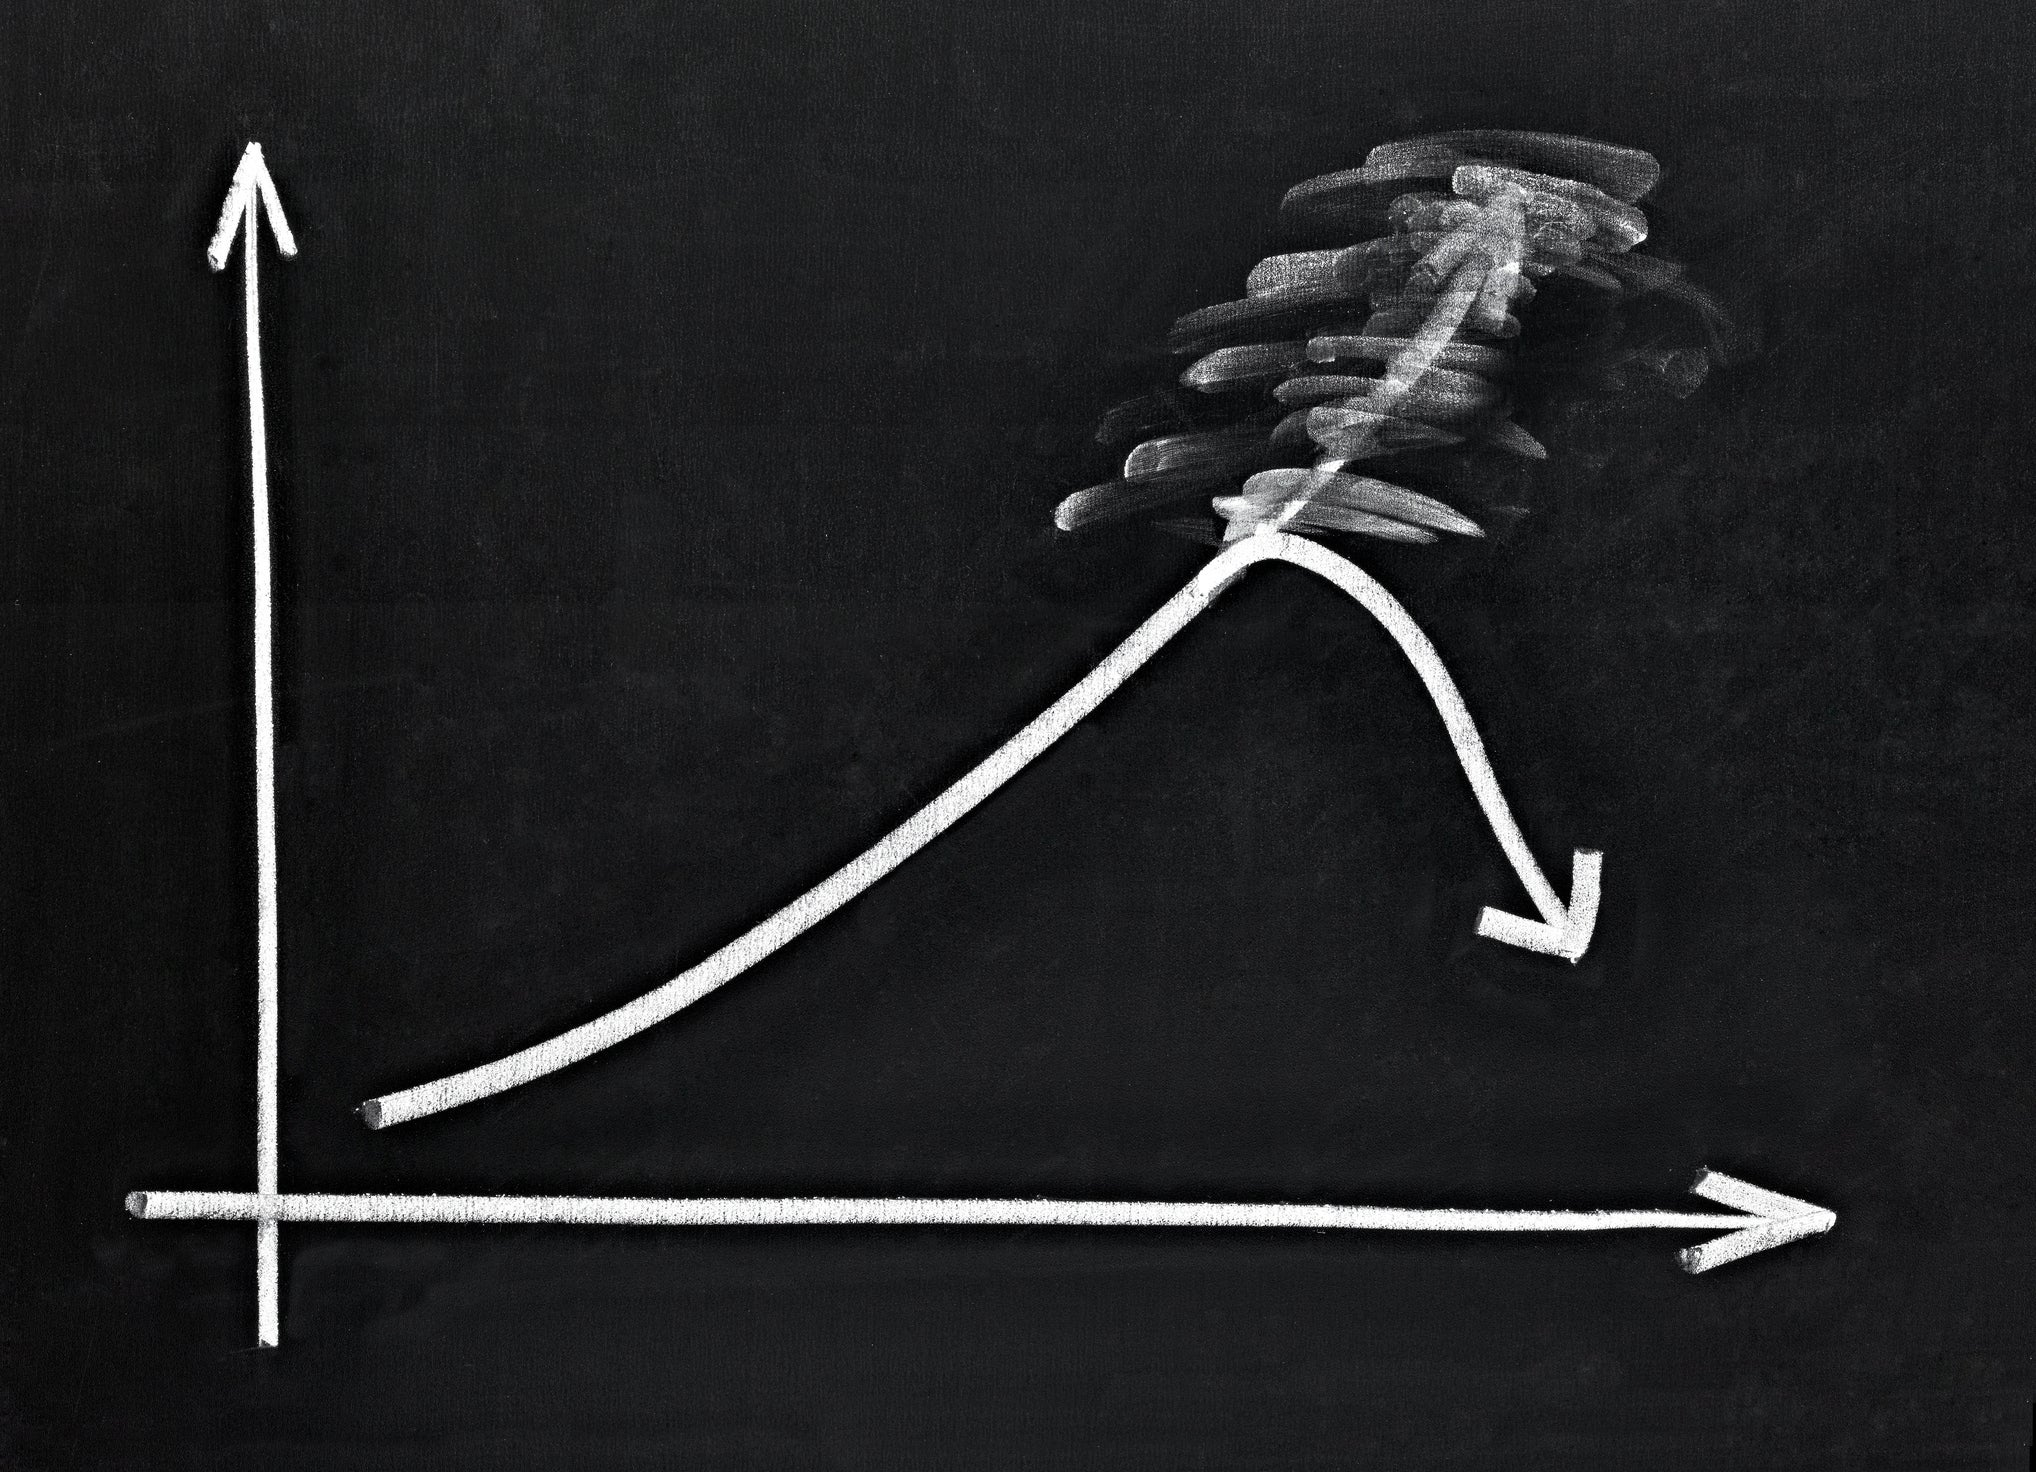 A chalkboard showing a chart with a sudden decline.